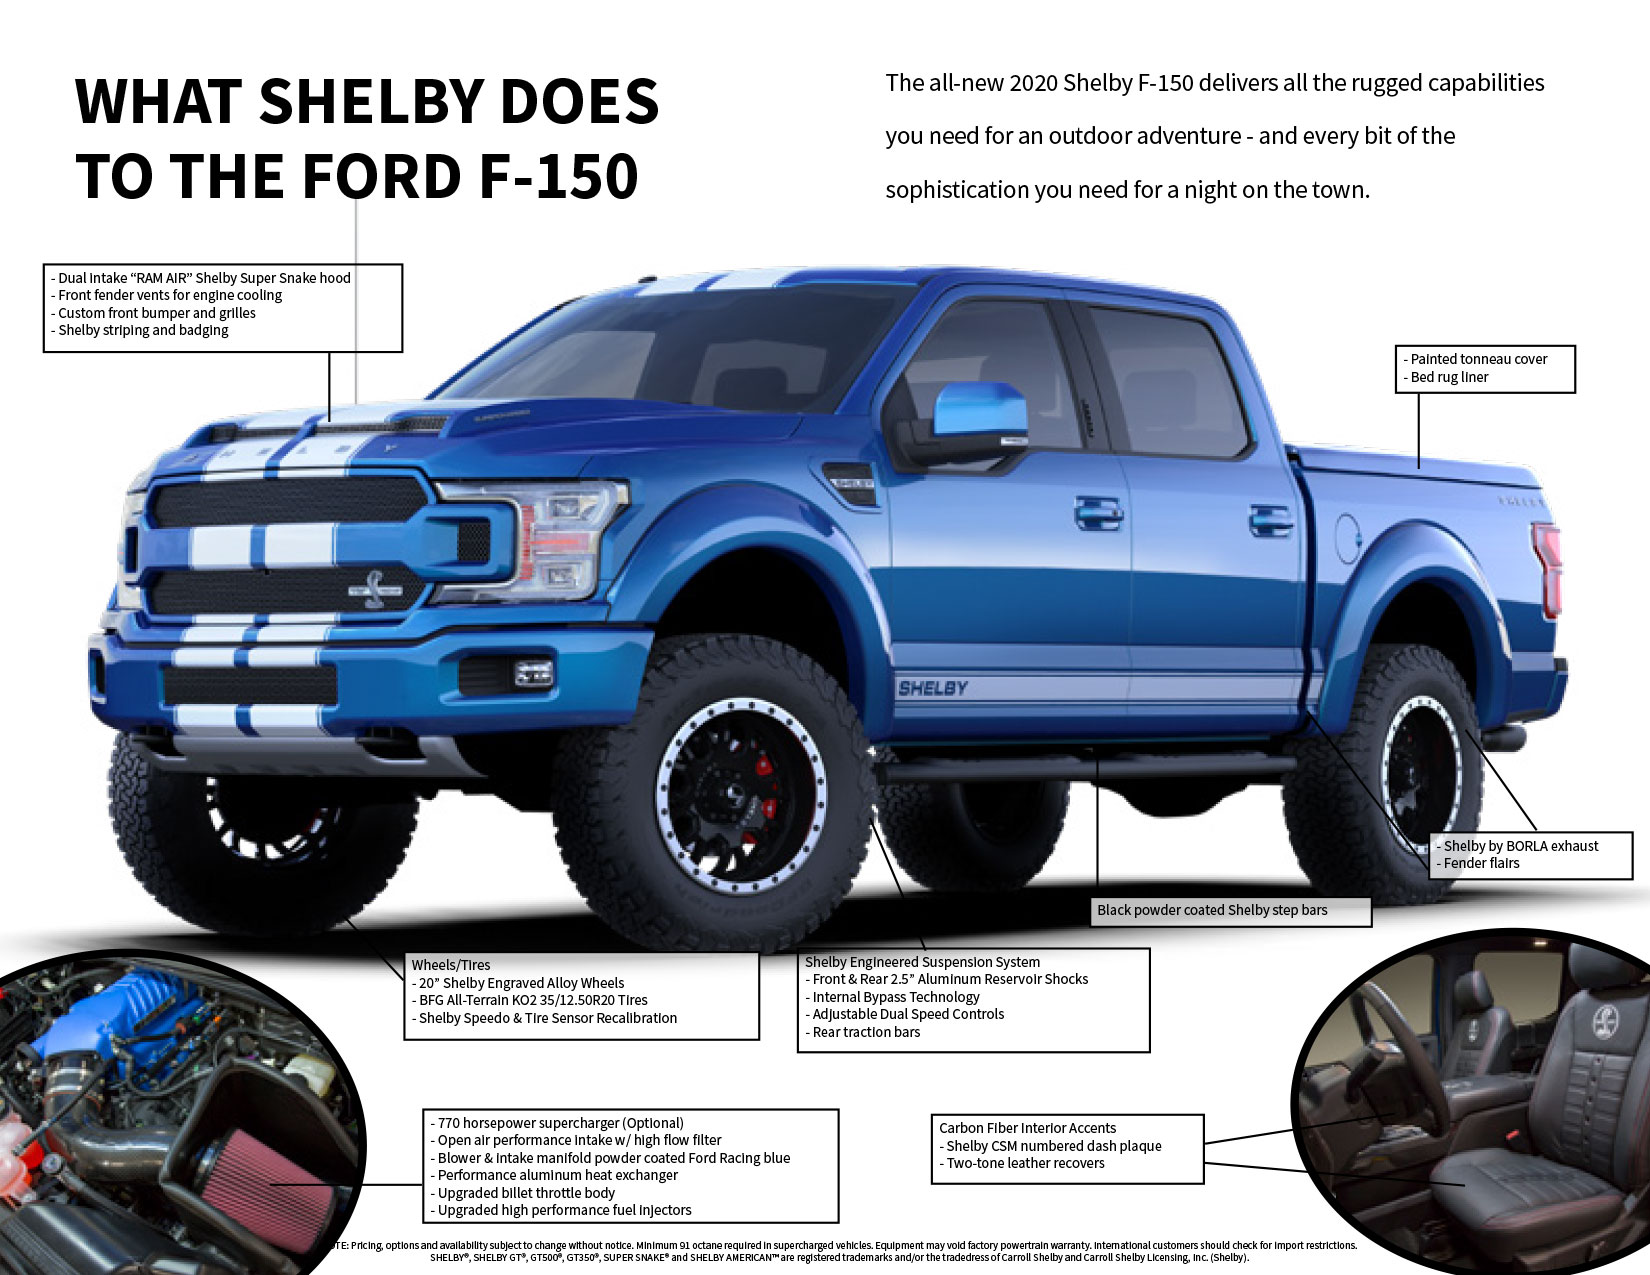 Shelby F-150 Data Sheet